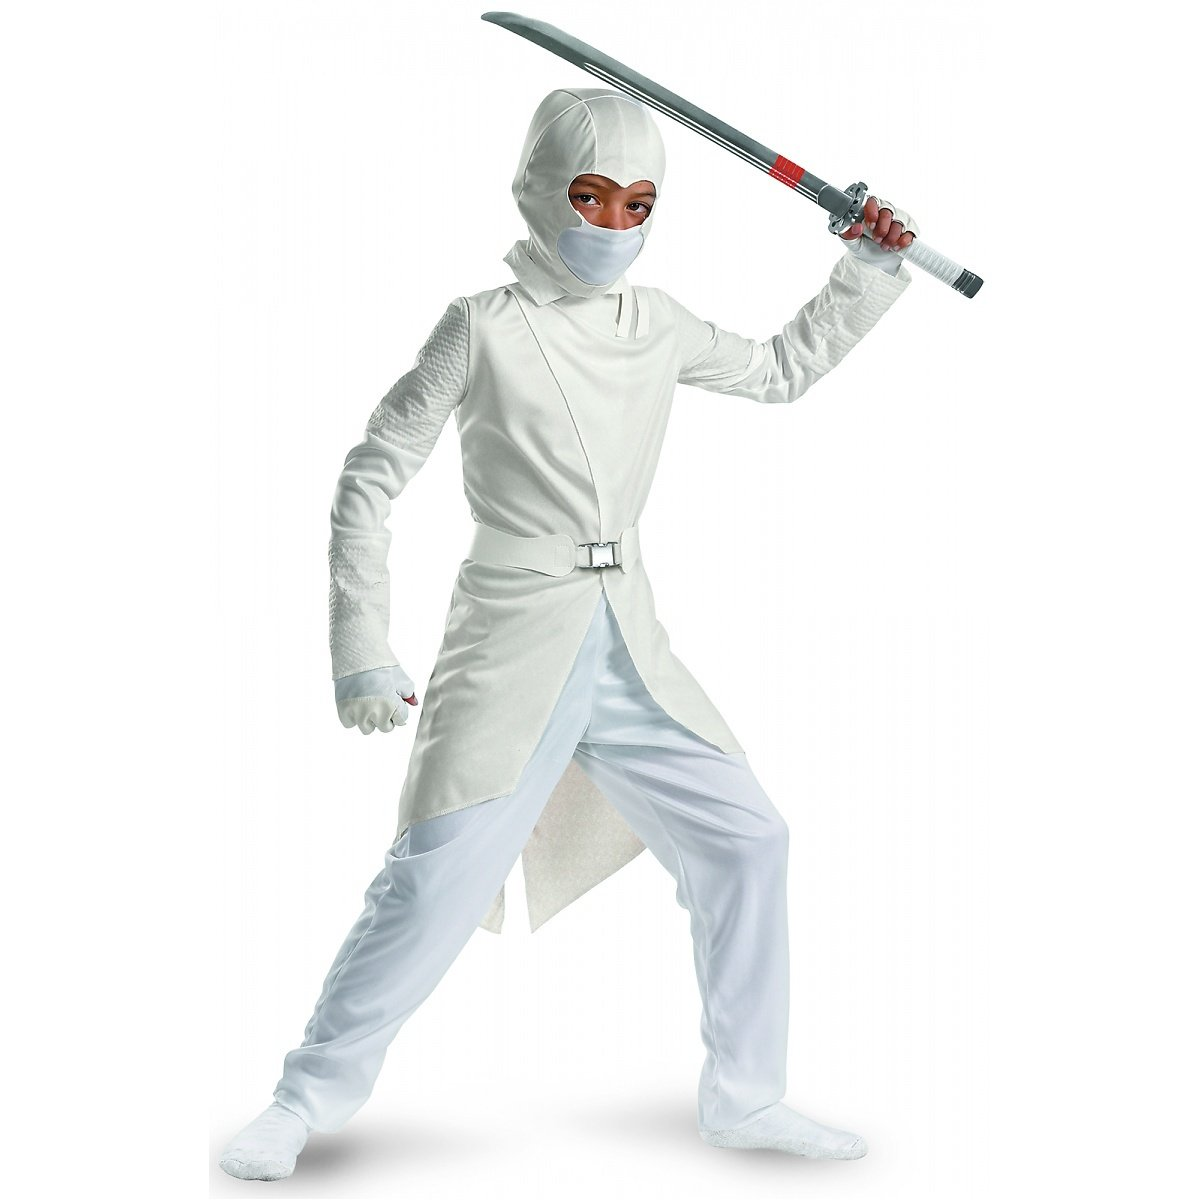 sc 1 st  Amazon.com & Amazon.com: Storm Shadow Deluxe Costume - Small: Toys u0026 Games